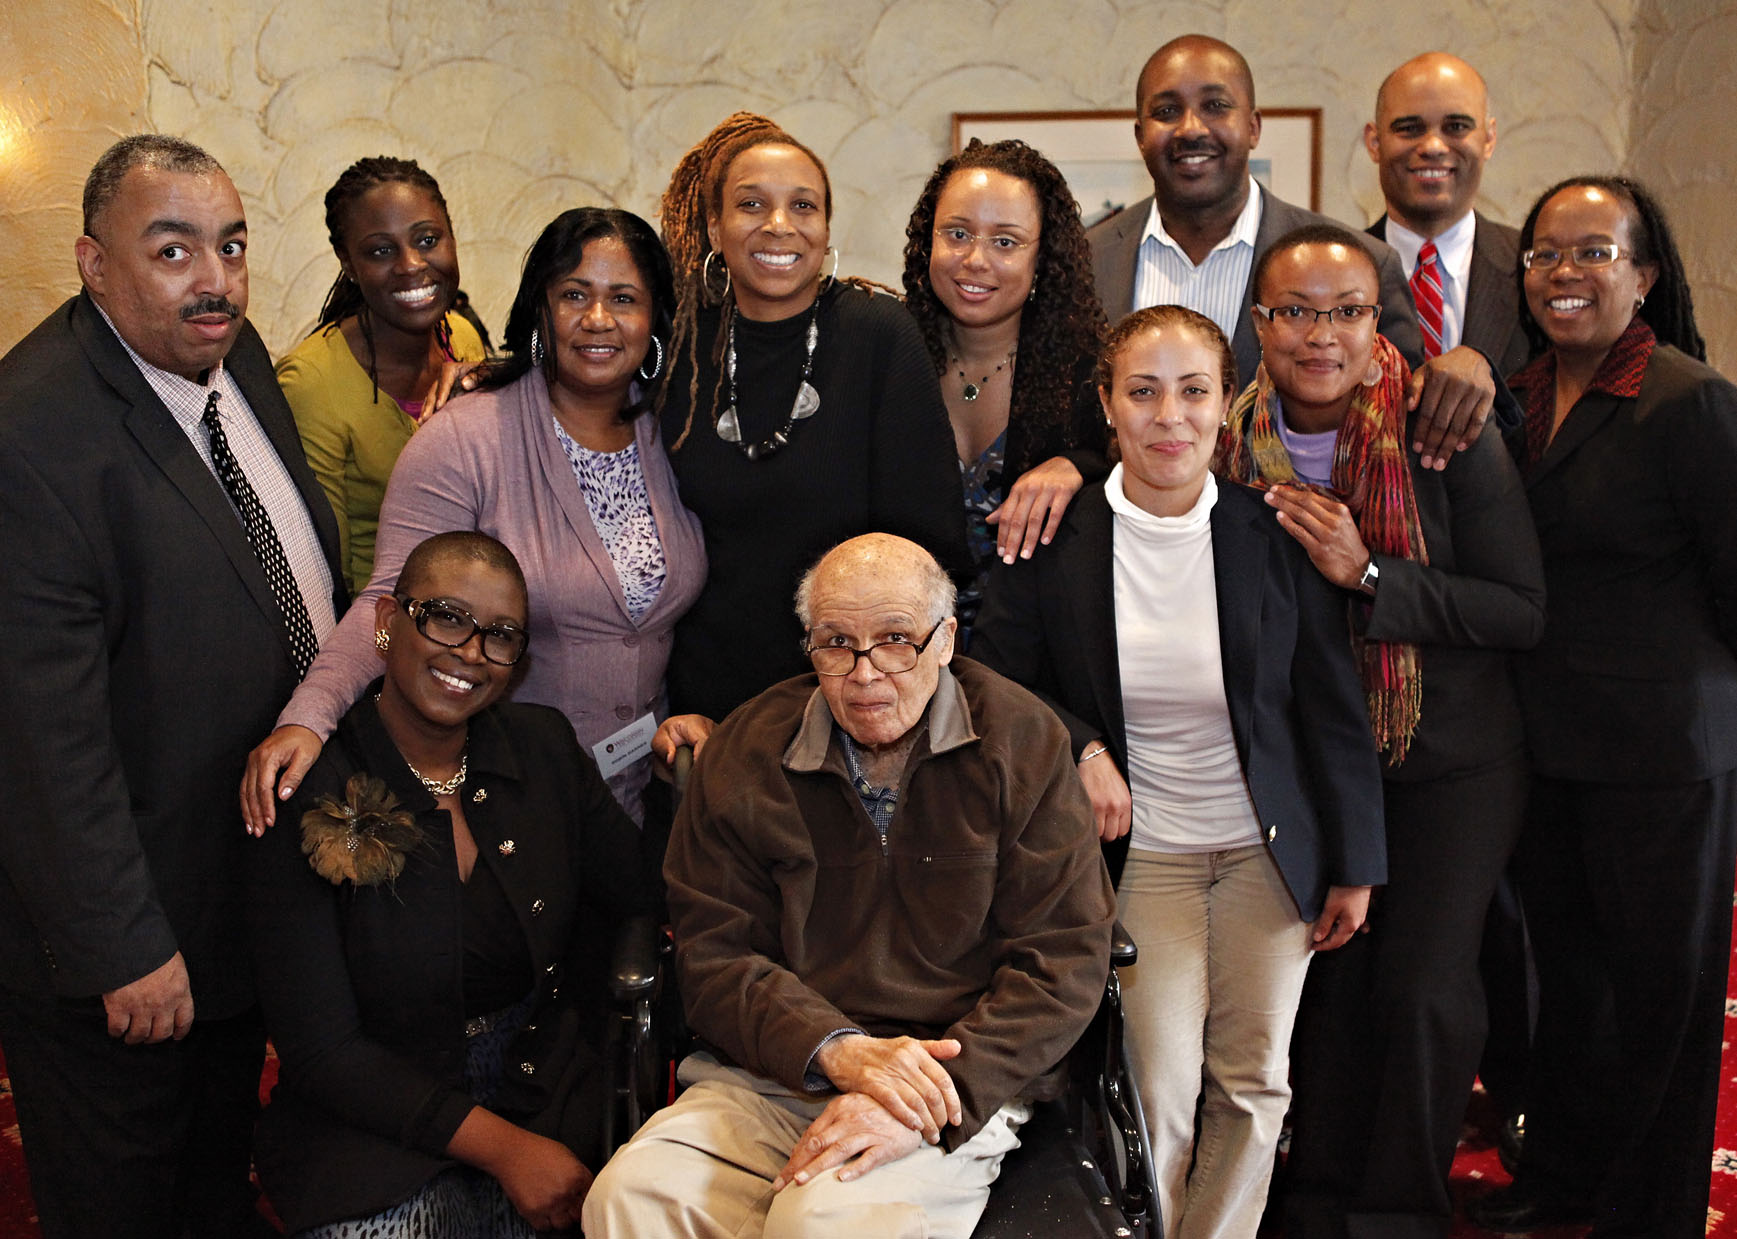 Front row: Michele Goodwin, James E. Jones, Jr., Lahny Silva.  Second Row: Michael Greene, Osamudia James, Robin Barnes, Kimberle Crenshaw, Cary Martin, Mario Barnes, Shalanda Baker, Thomas Mitchell, Adele Morrison